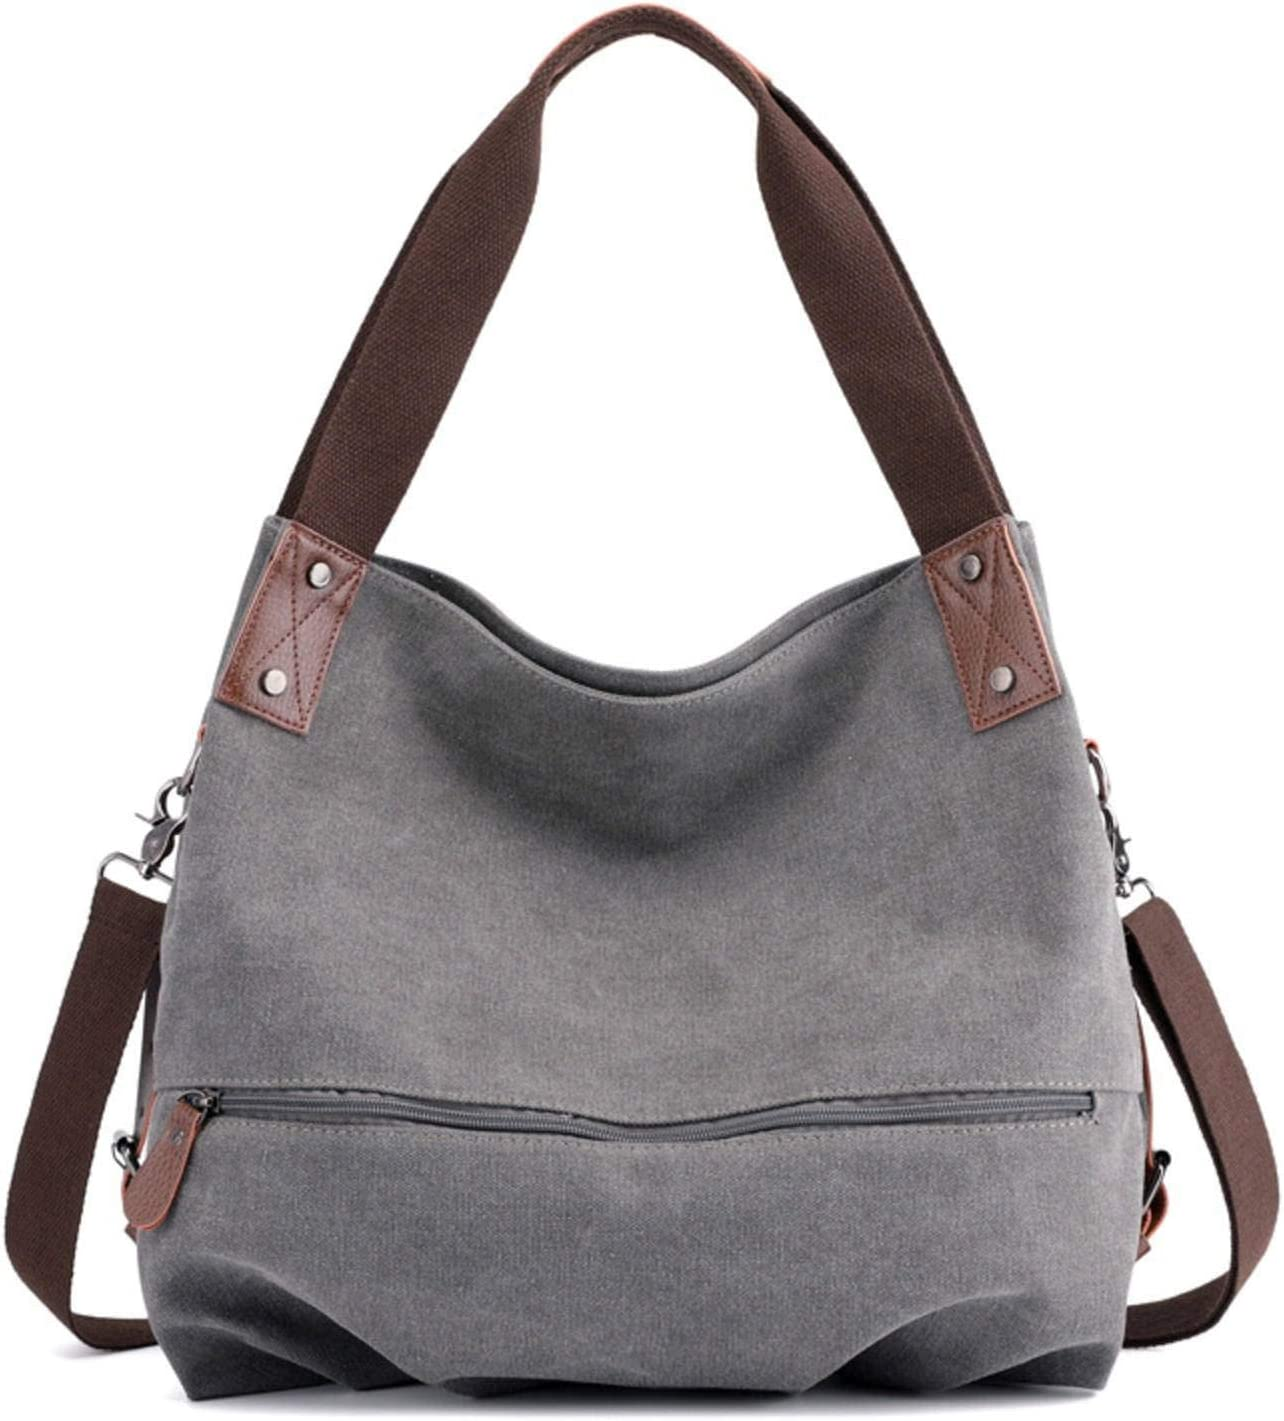 NC Ladies Shoulder Bags Handbags Messenger Bags Casual Solid Color Fashion All-Match Canvas Bags